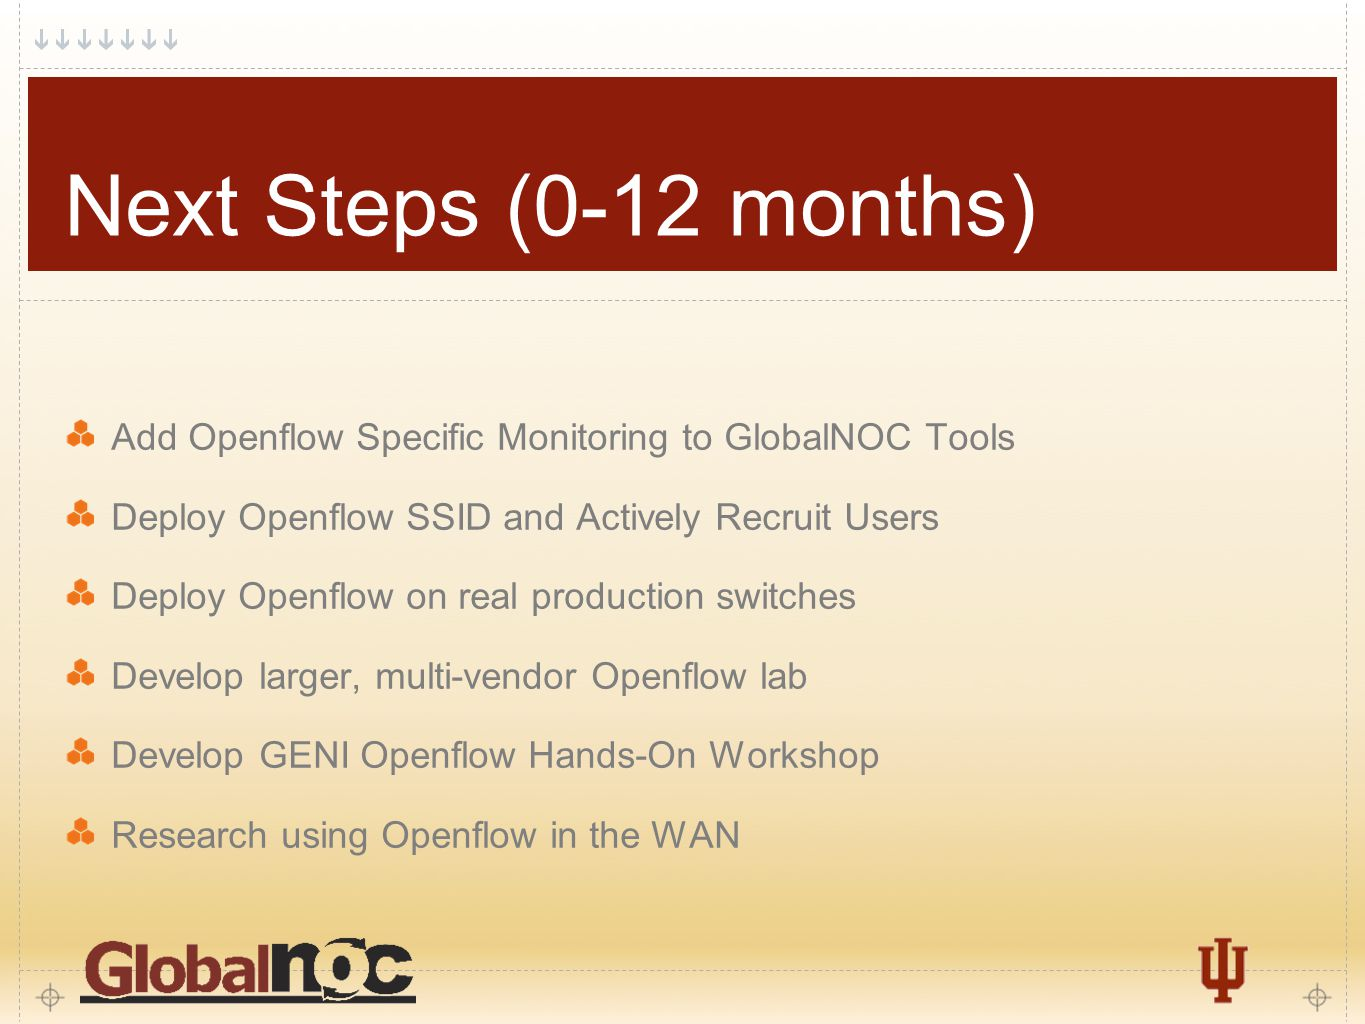 8 Next Steps (0-12 months) Add Openflow Specific Monitoring to GlobalNOC Tools Deploy Openflow SSID and Actively Recruit Users Deploy Openflow on real